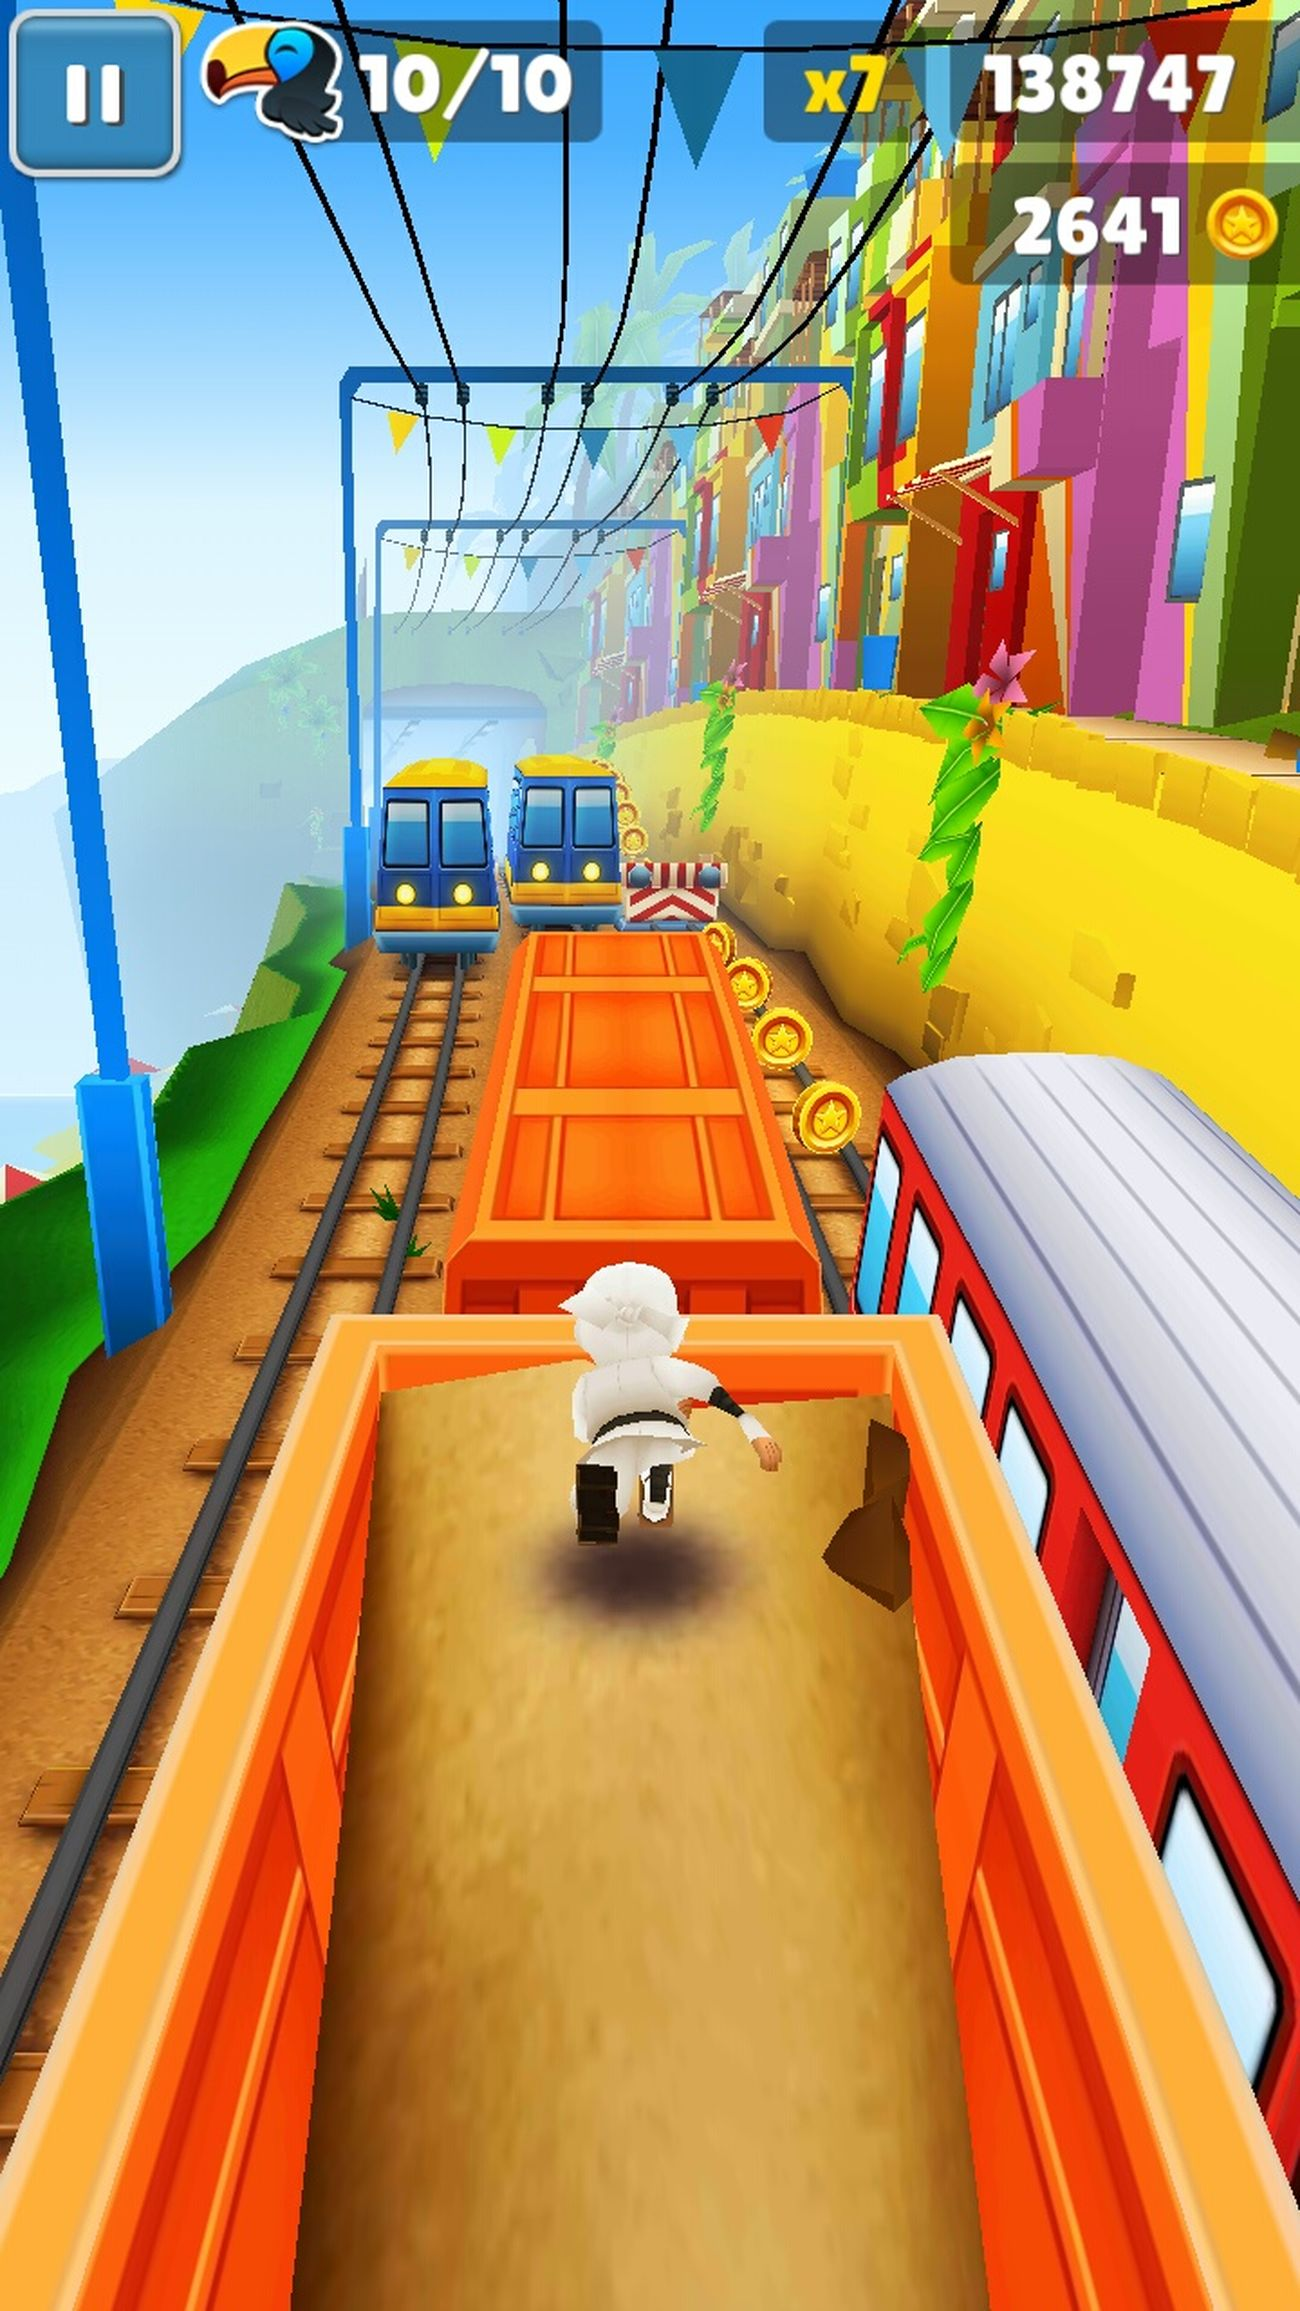 Subway surf! 2641 Golds and 138747 score))) Taking Photos Hi! That's Me Check This Out Hello World WOW Record Score Subway Subway Surf